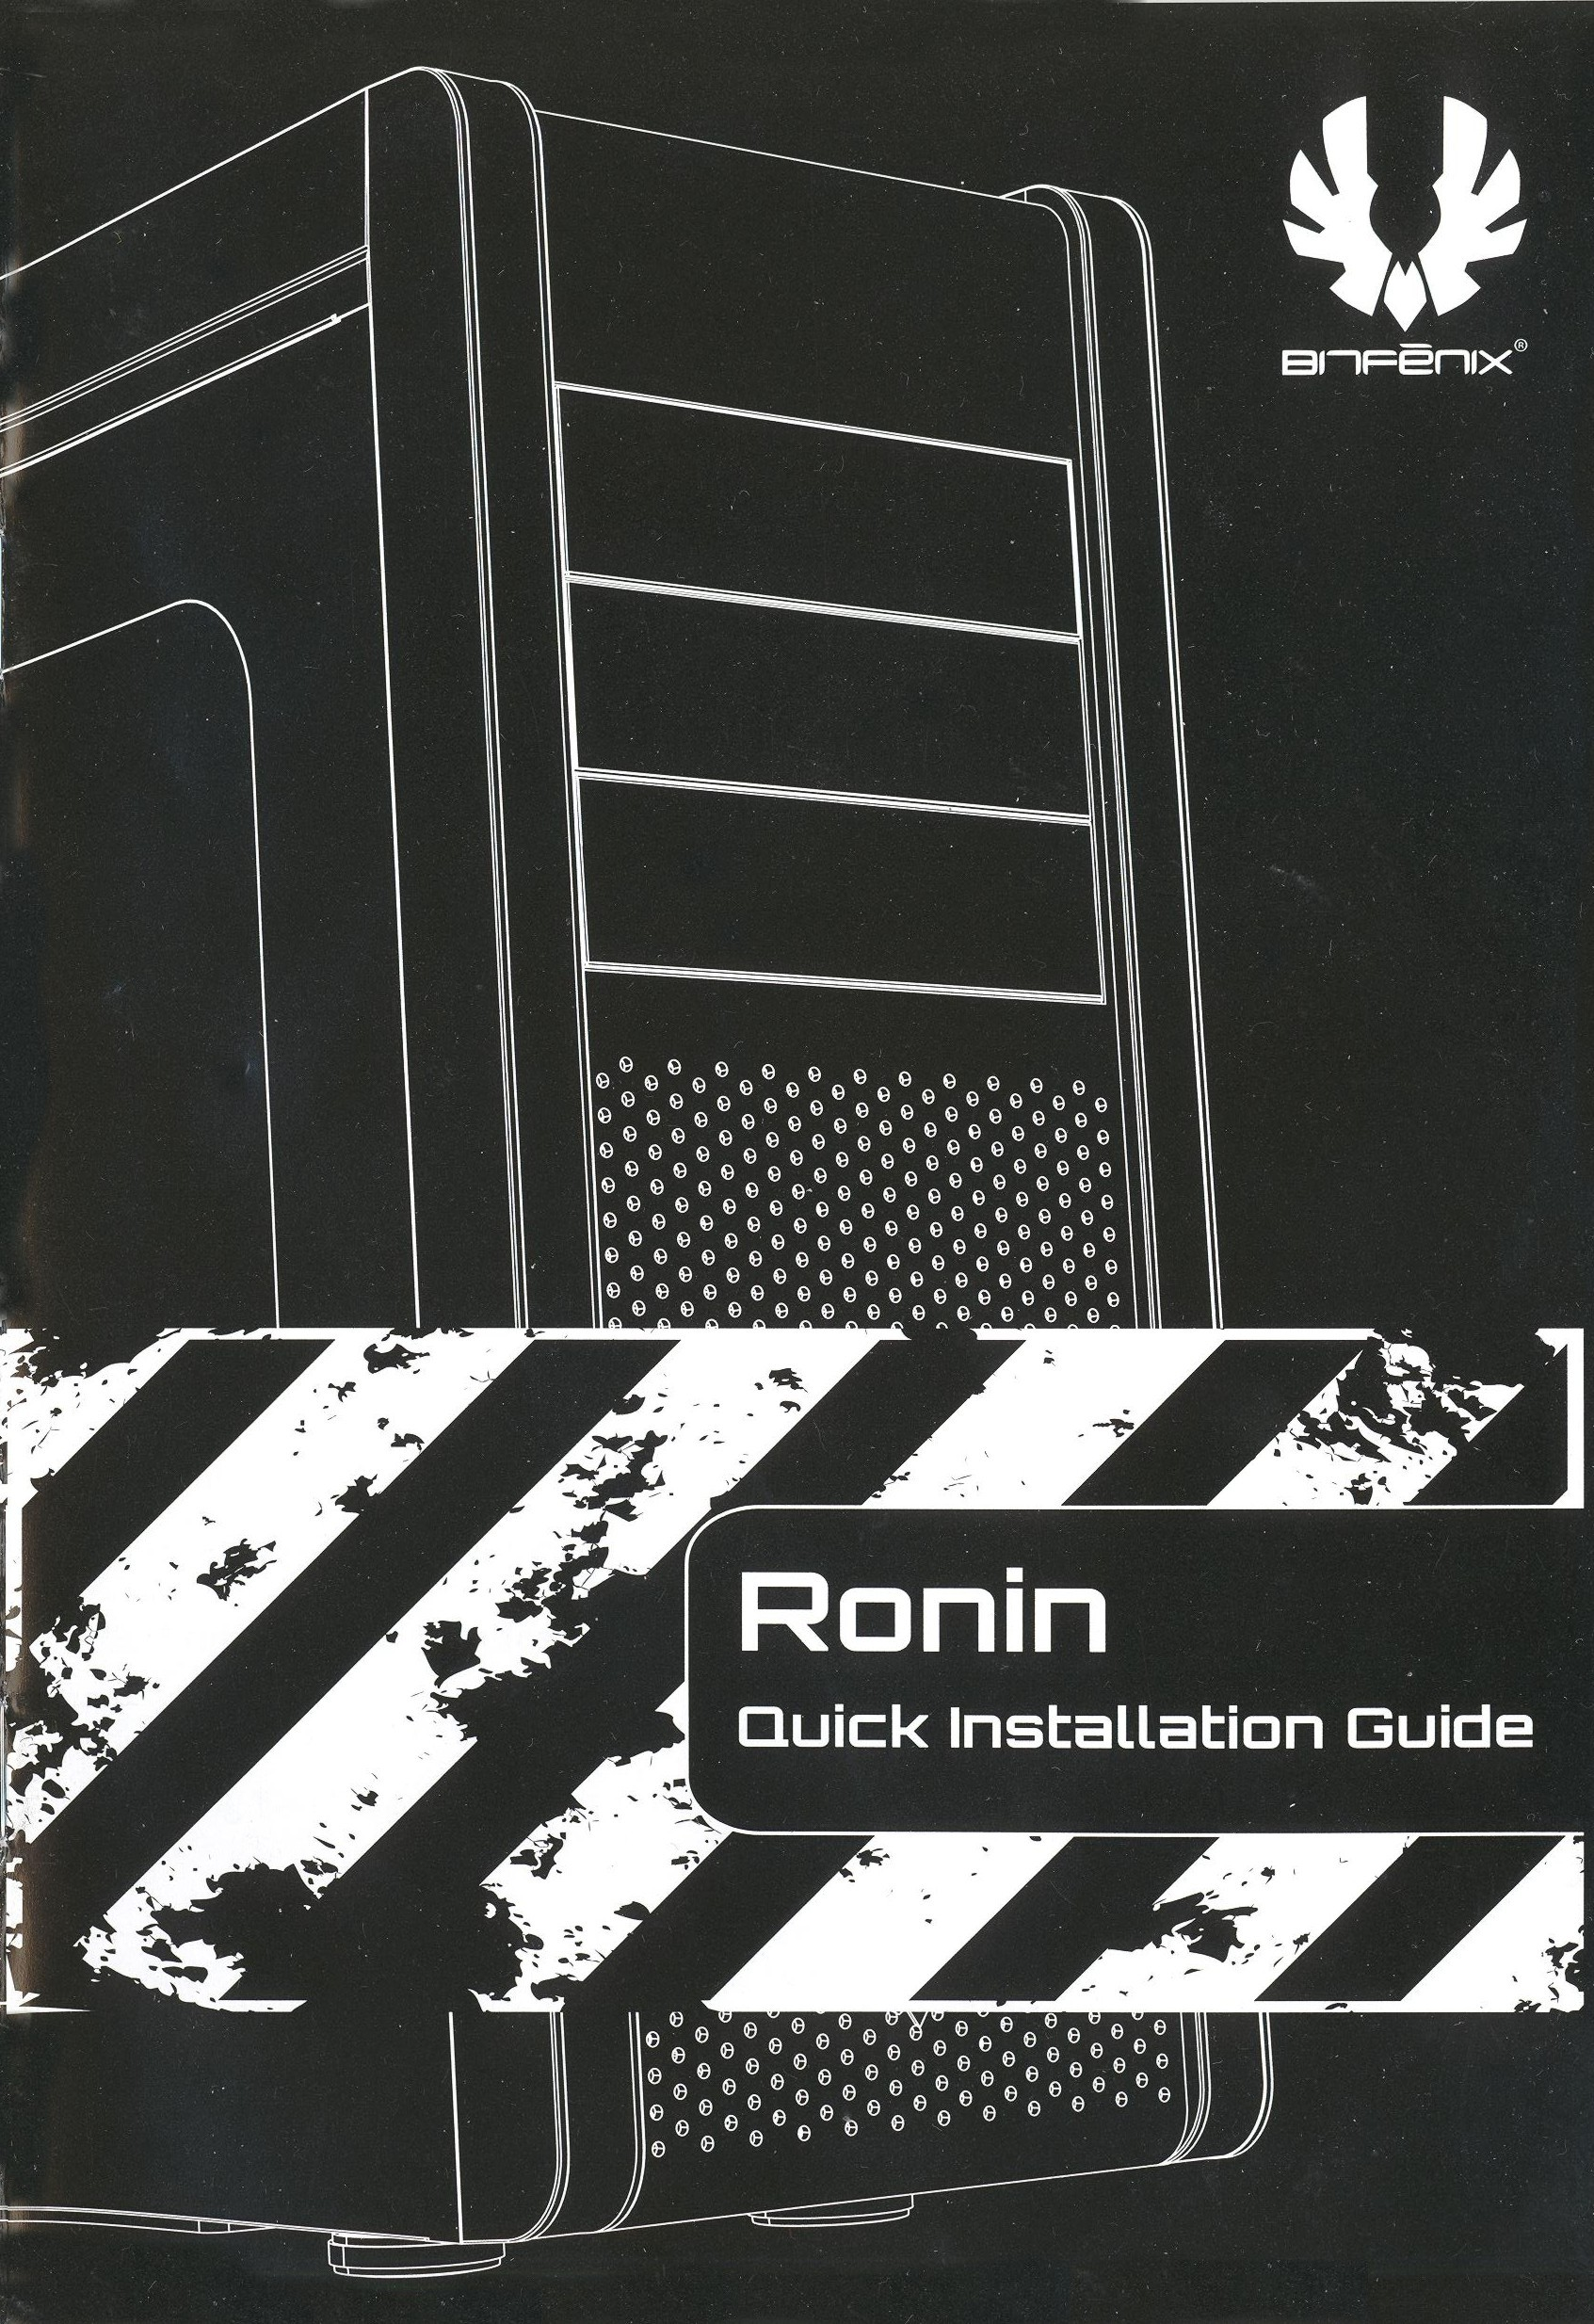 Ronin Quick Installation Guide